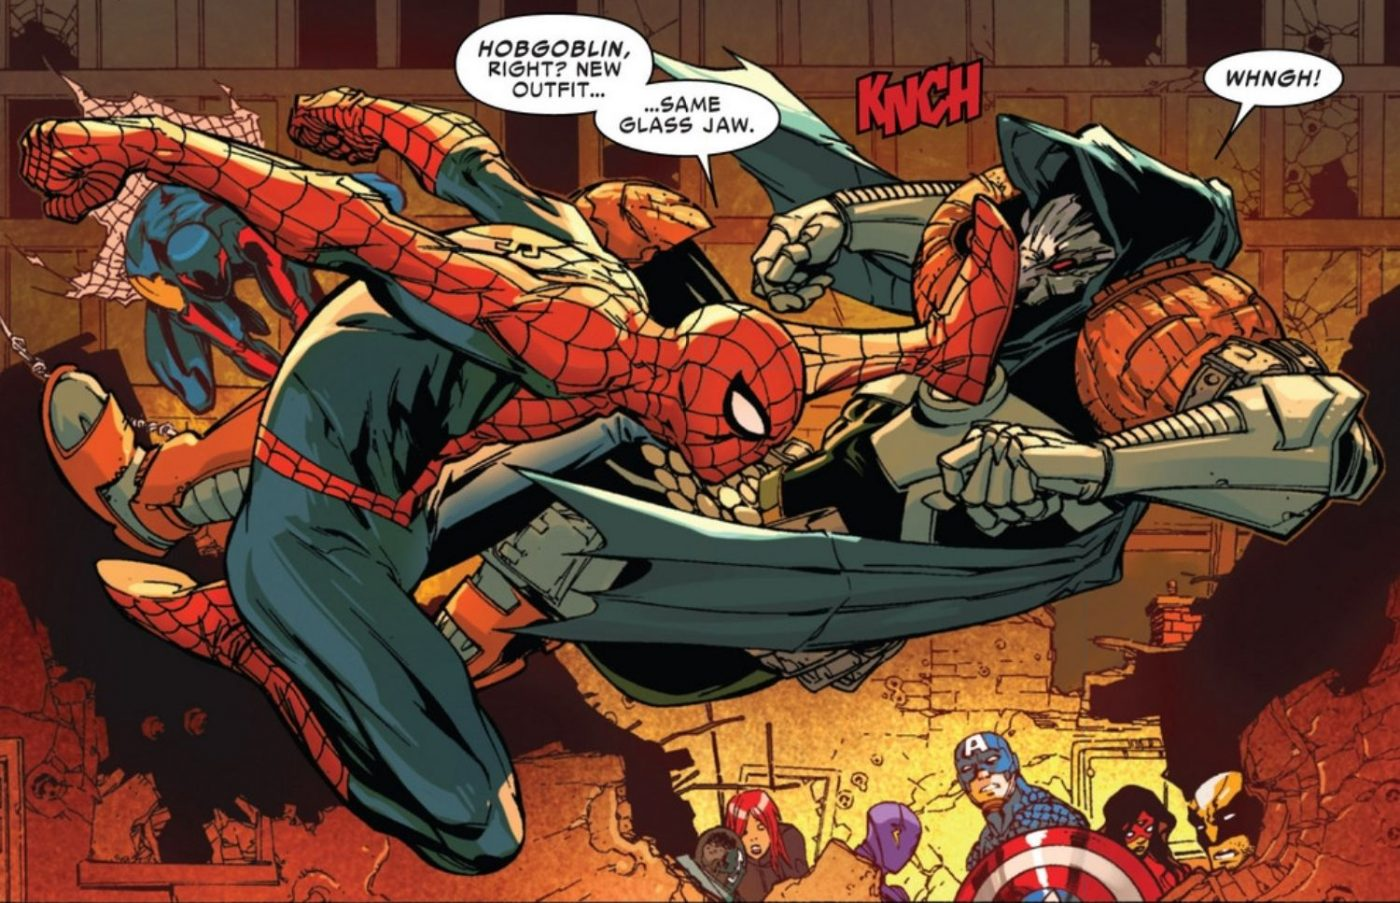 Much like in life, Superior Spider-Man must die, but not before he has a few revelations. The final issue of the series comes out today and we're all hoping for answers, satisfaction and a sweet Spidey comic we can all get behind, but is it good?